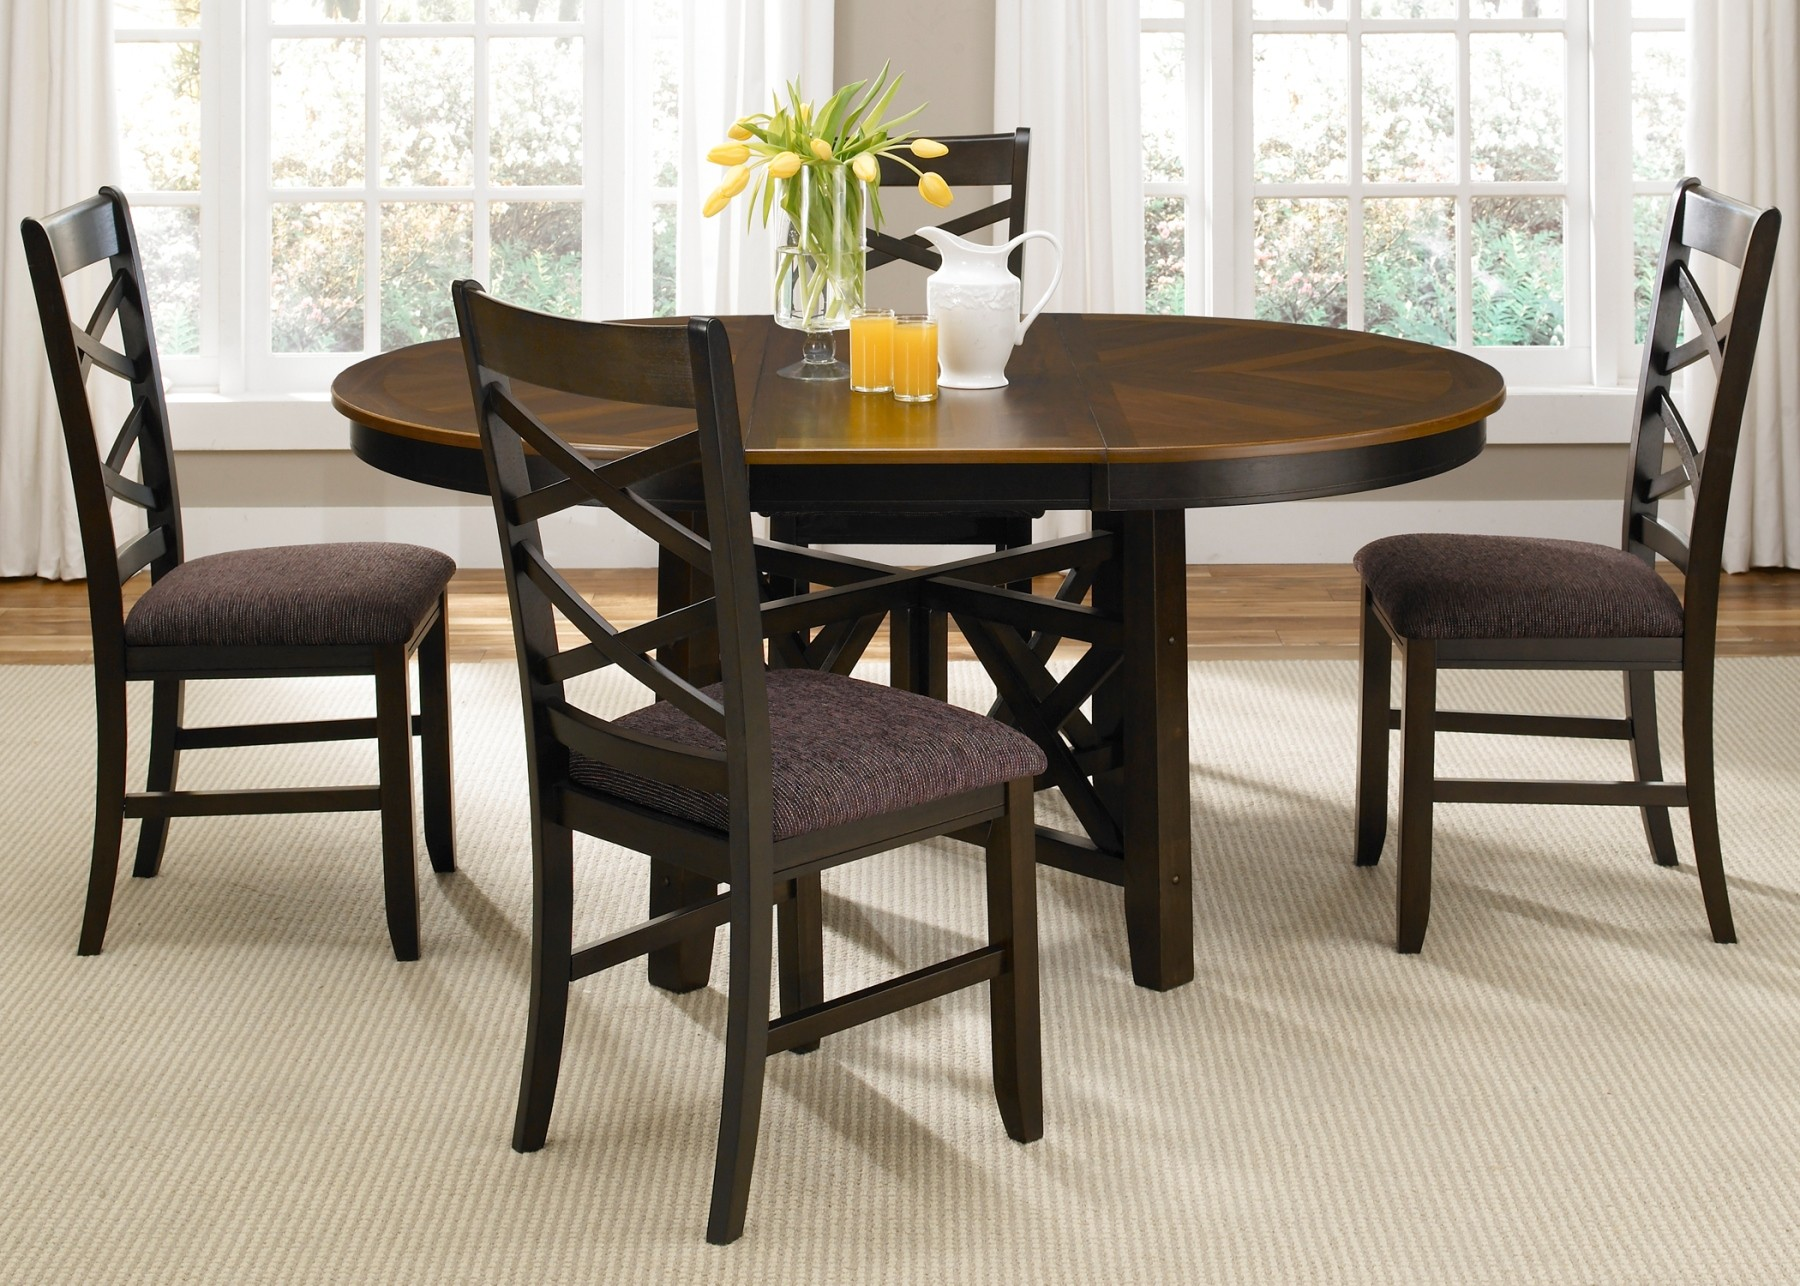 bistro ii oval extendable pedestal dining room set from liberty 74 p4866 t4866 coleman furniture. Black Bedroom Furniture Sets. Home Design Ideas